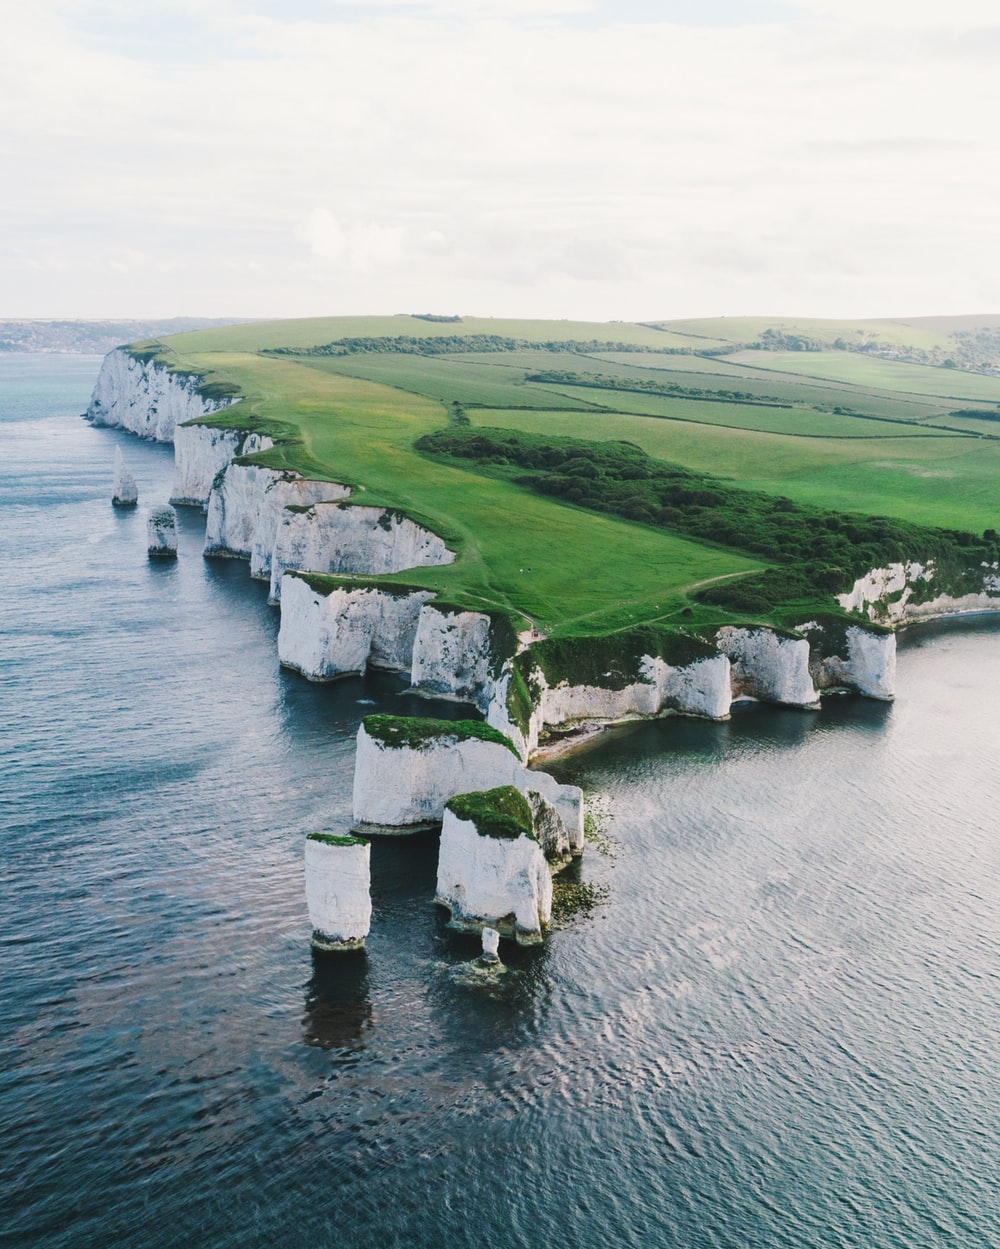 bird's-eye-view photography of land near body of water